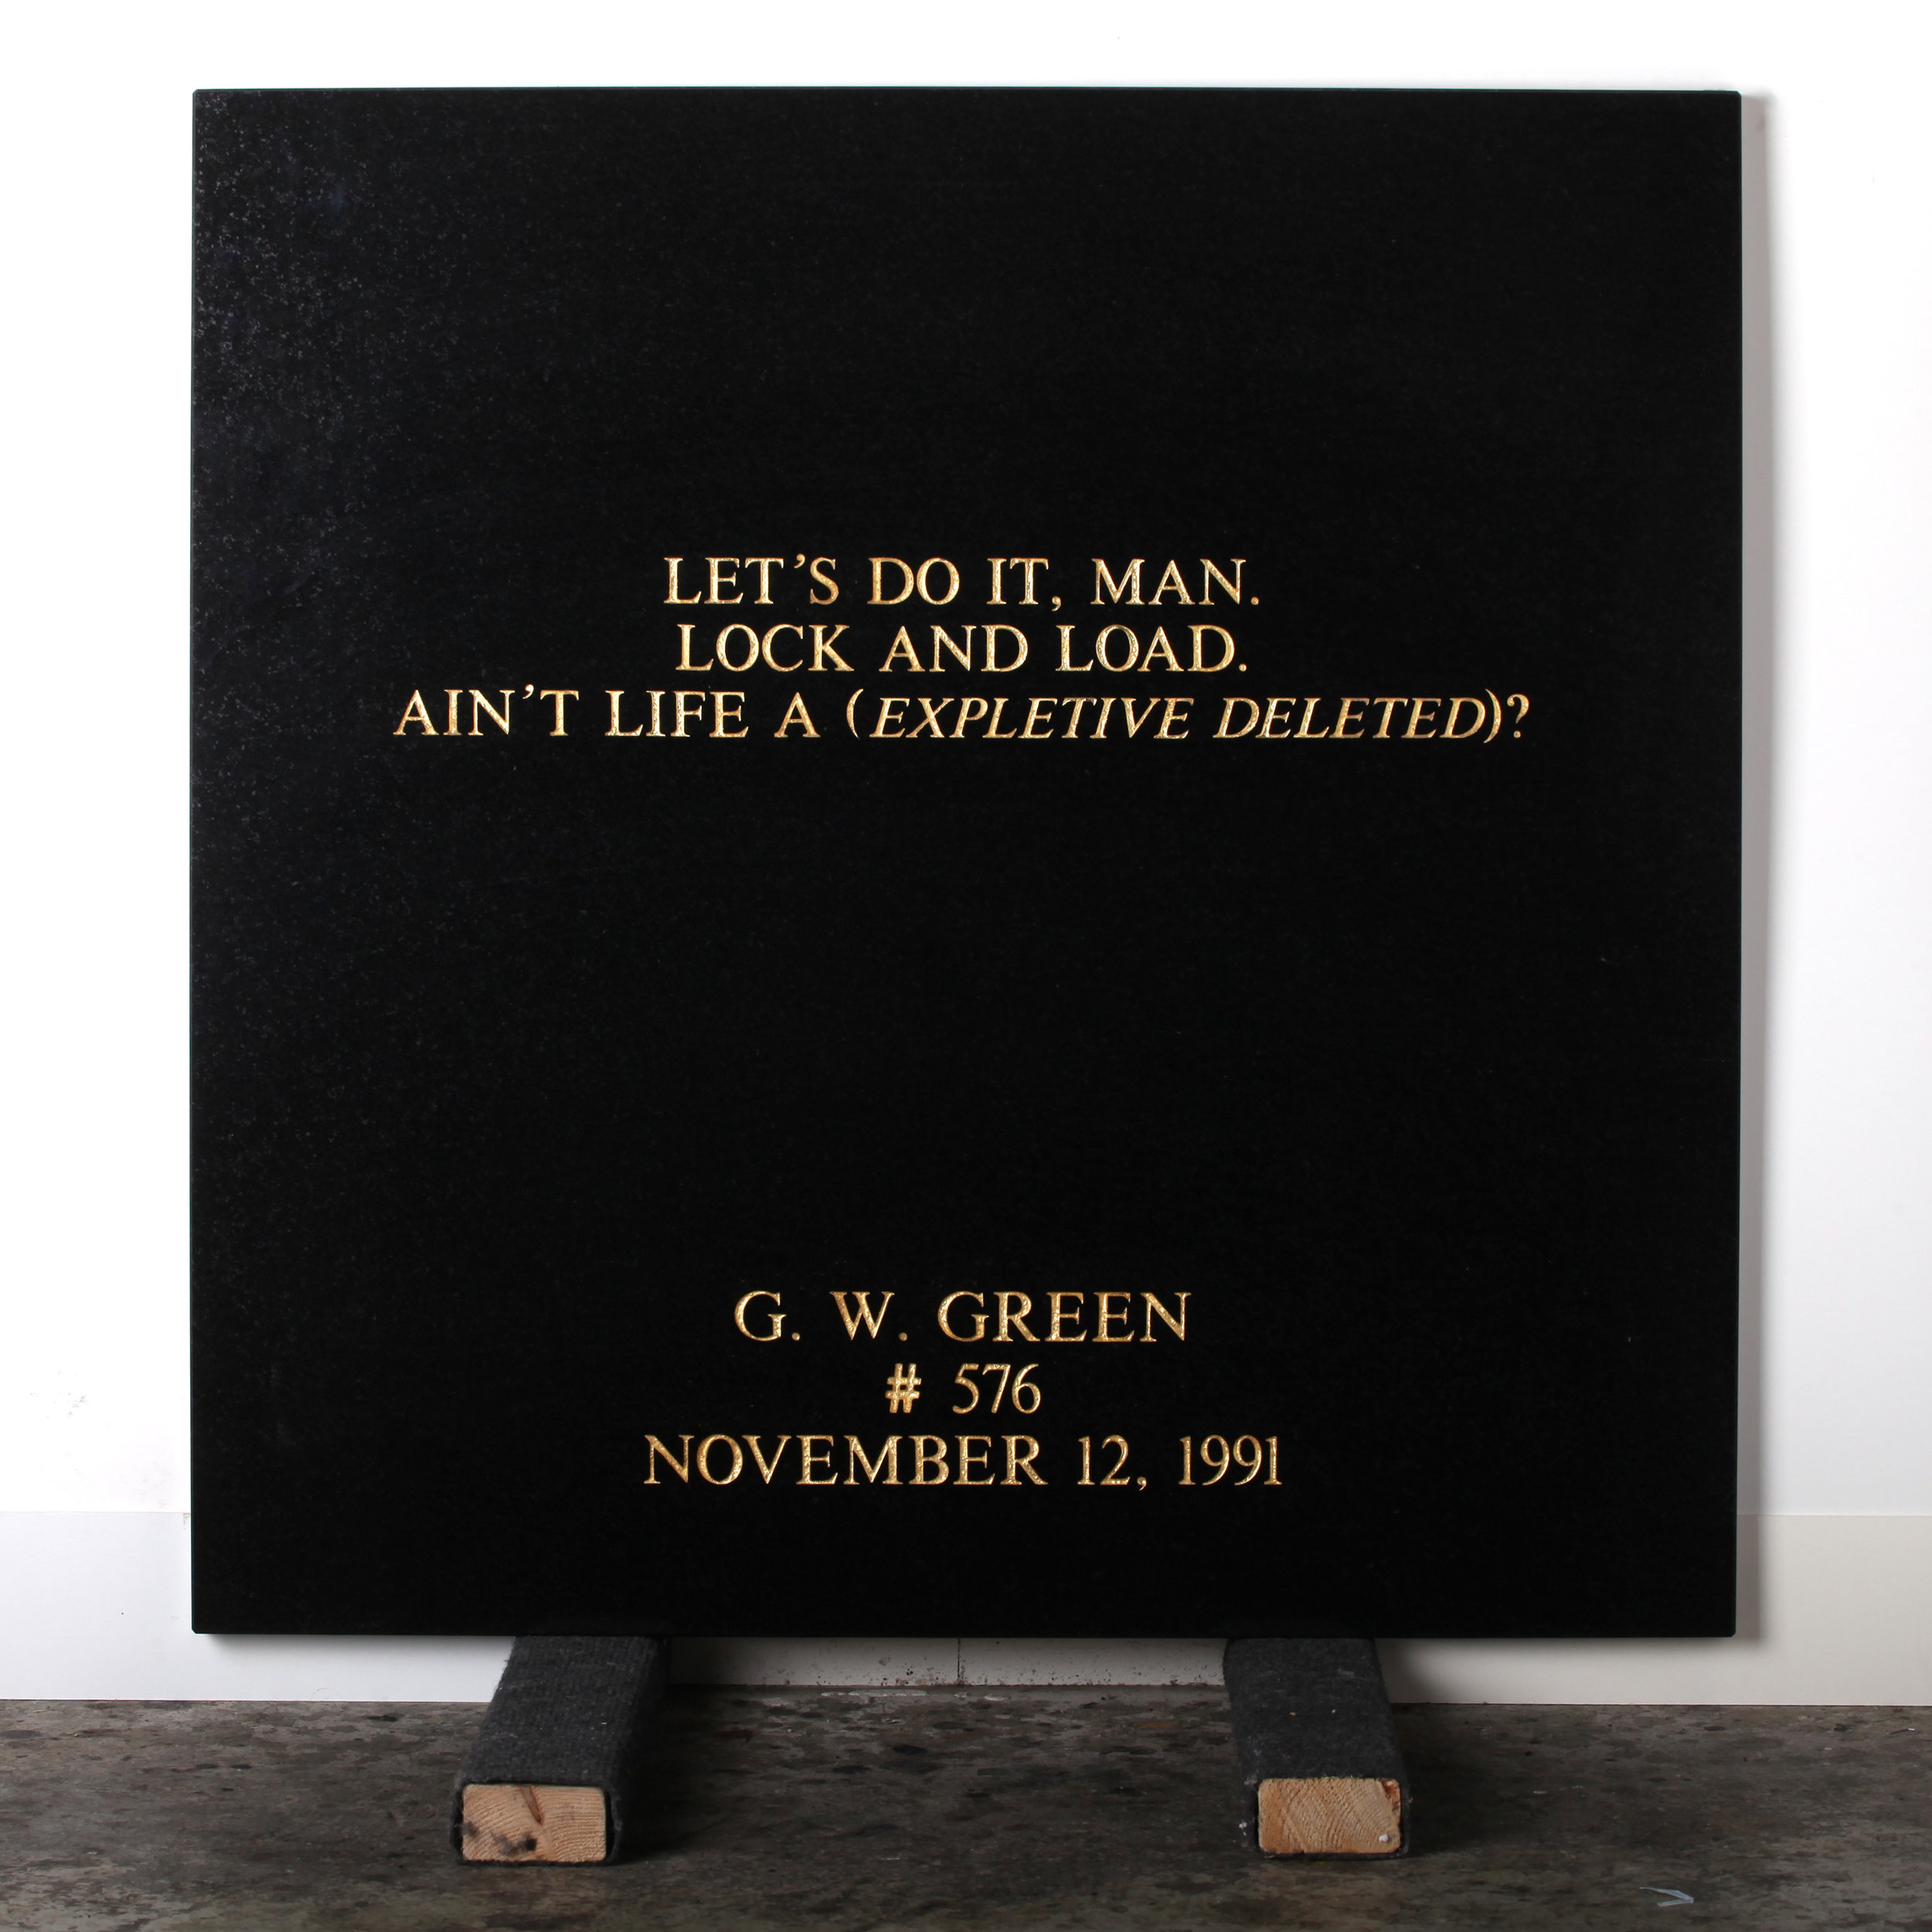 Last Statement /  Plate XI. # 576 G. W. Green  Marble / Sandblasted Letters / 24 Carat Gold Leaf 80 x 80 x 3 cm / 31 x 31 x 1,5 in Collection of Per Fronth